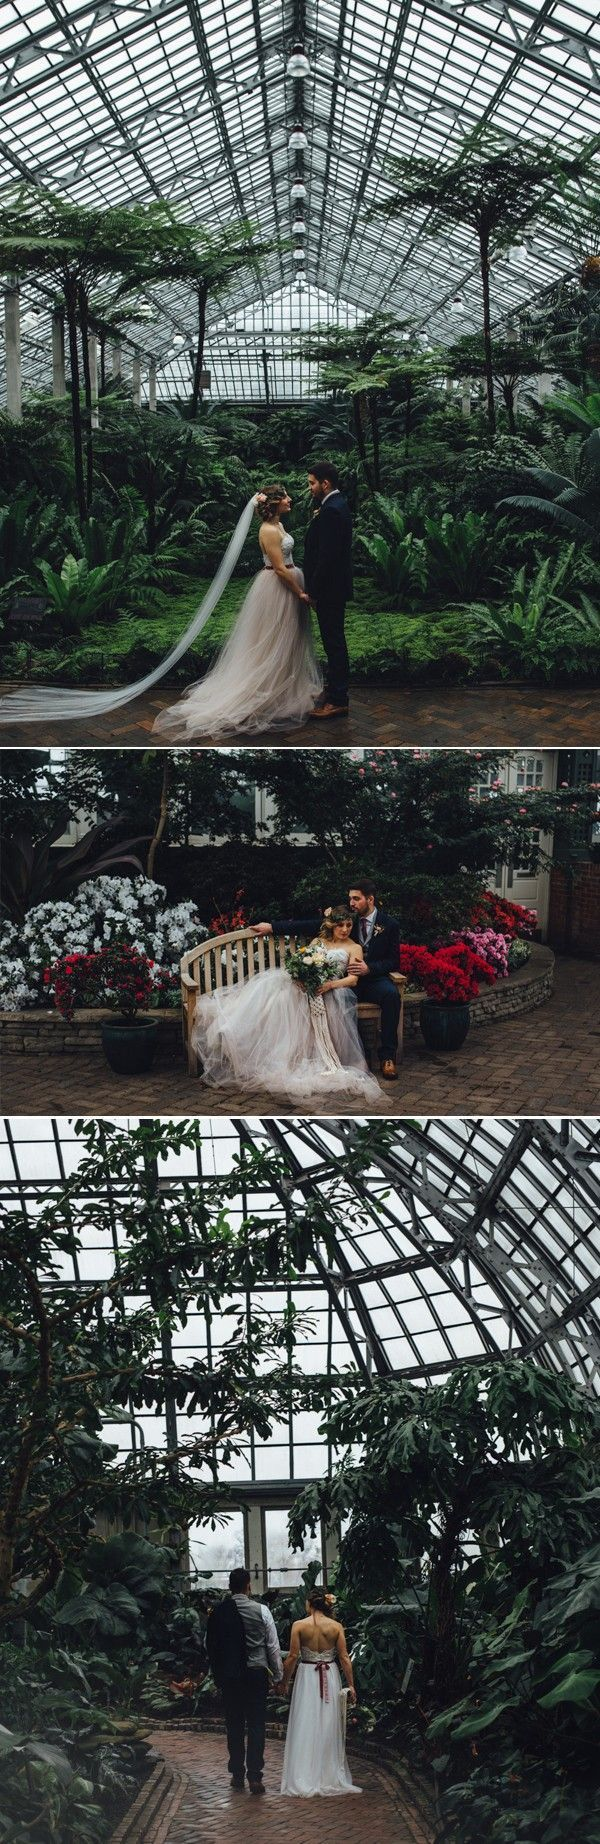 Greenhouse spaces offer lush, natural wedding environments | Erika Mattingly Photography #conservatorygreenhouse